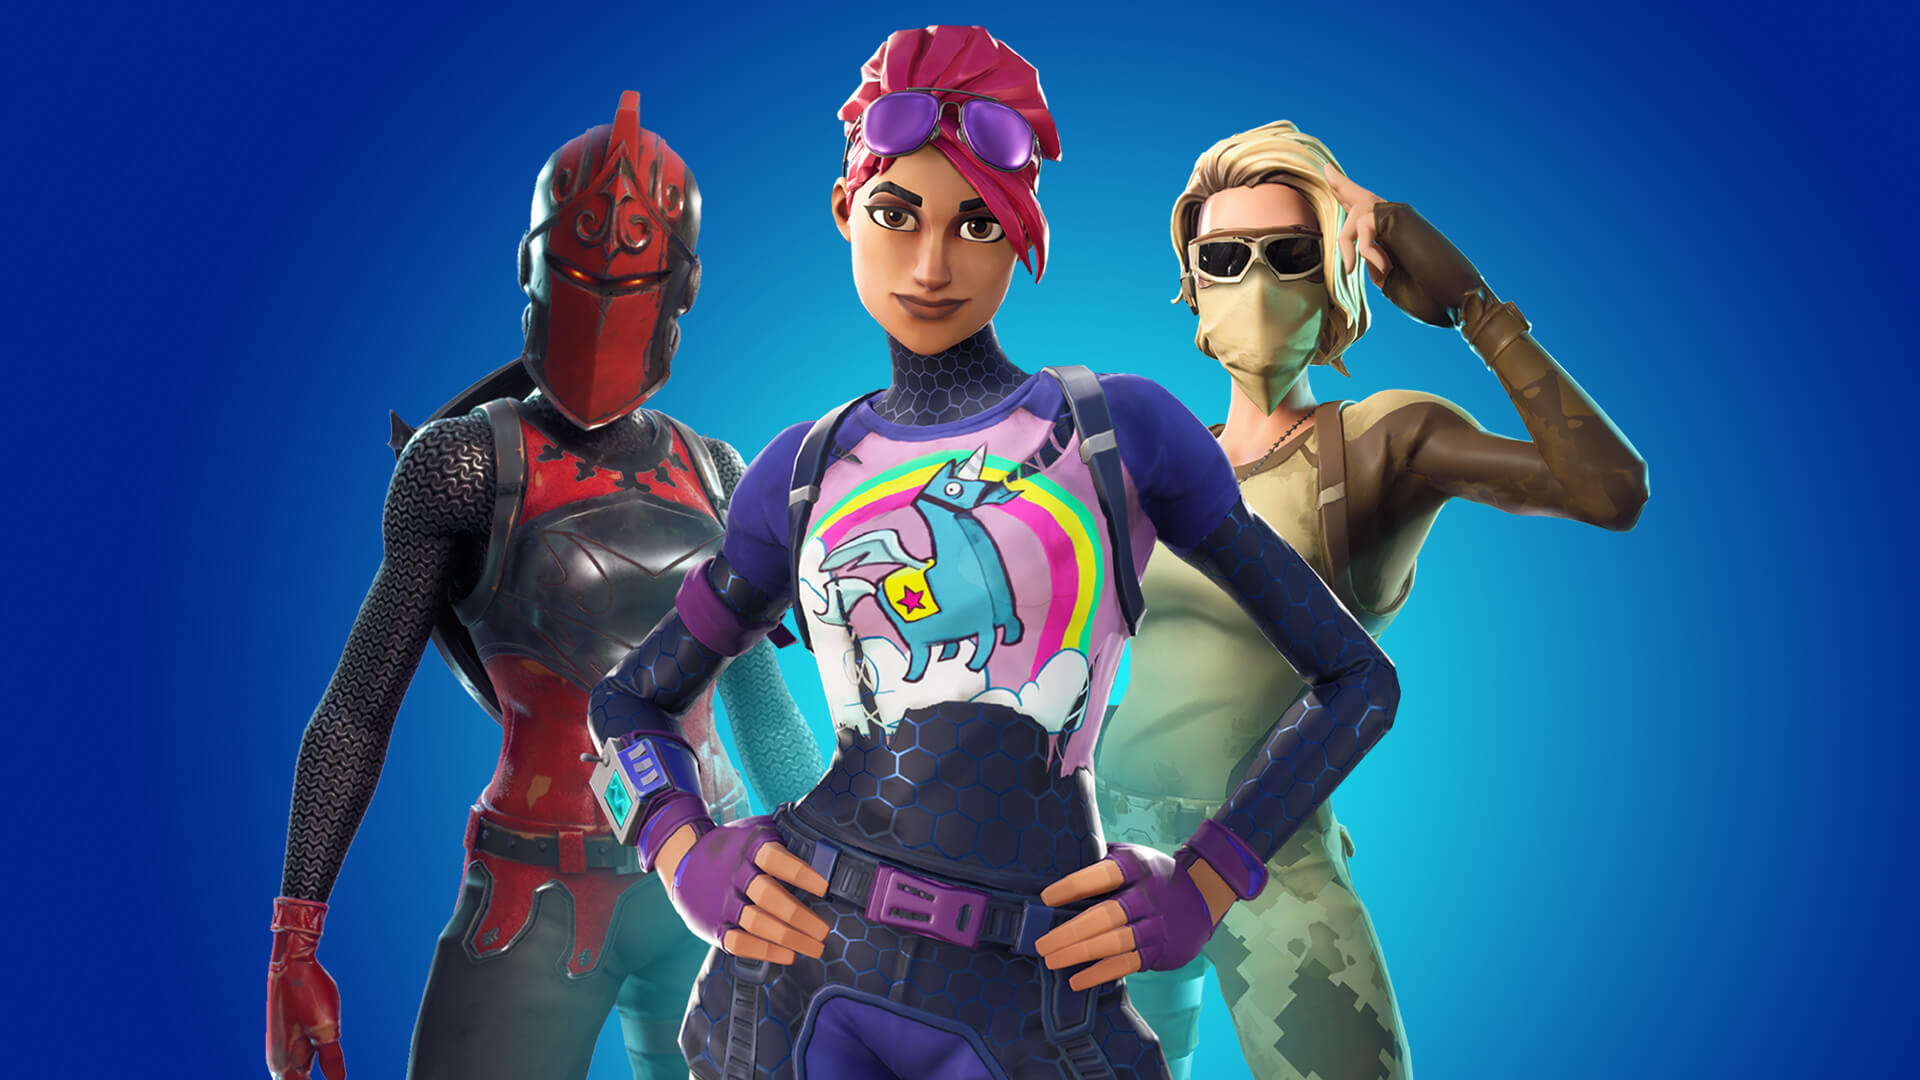 Fortnite gets Arabic language support, looking into Middle East